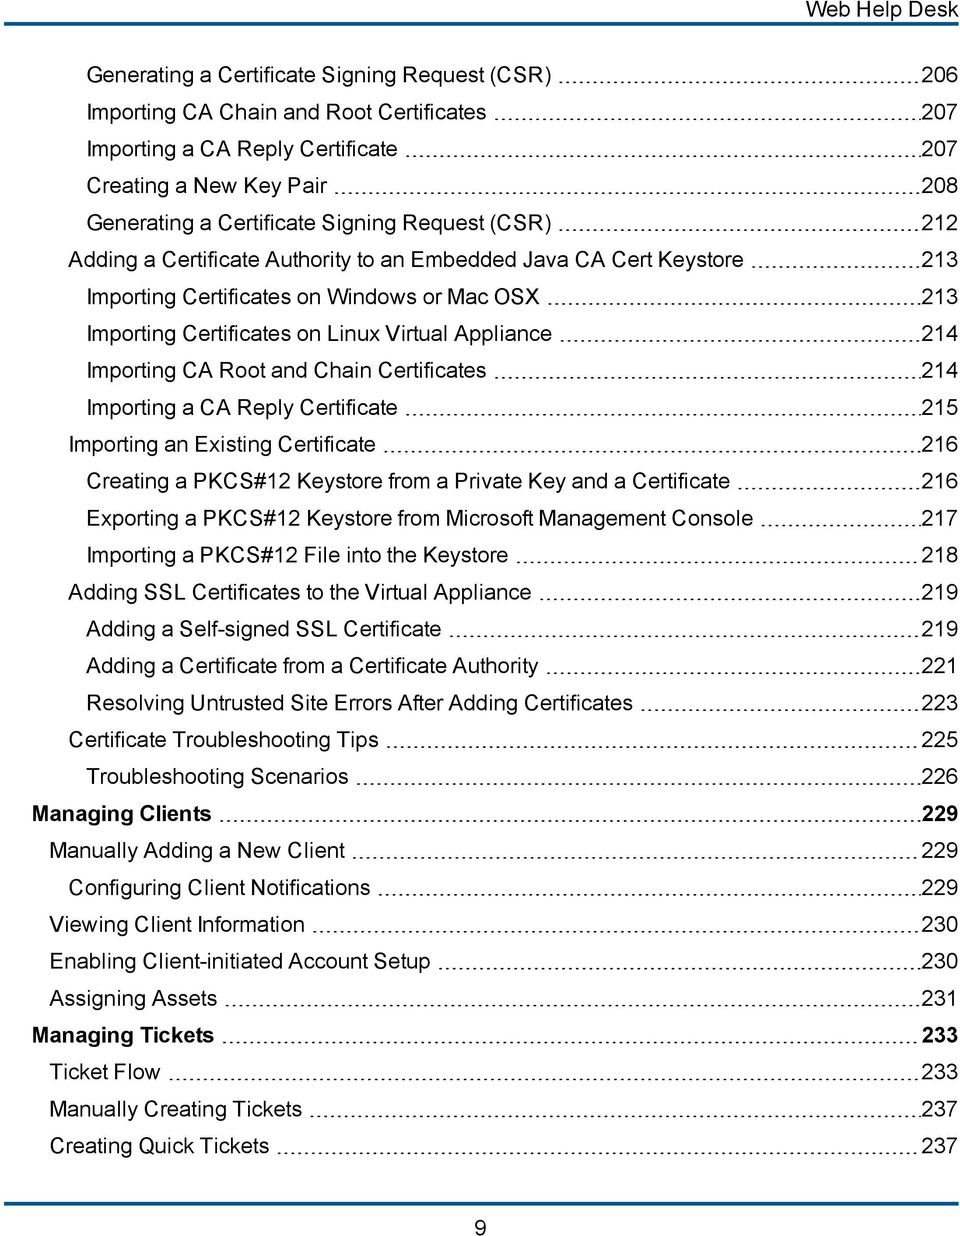 214 Importing CA Root and Chain Certificates 214 Importing a CA Reply Certificate 215 Importing an Existing Certificate 216 Creating a PKCS#12 Keystore from a Private Key and a Certificate 216